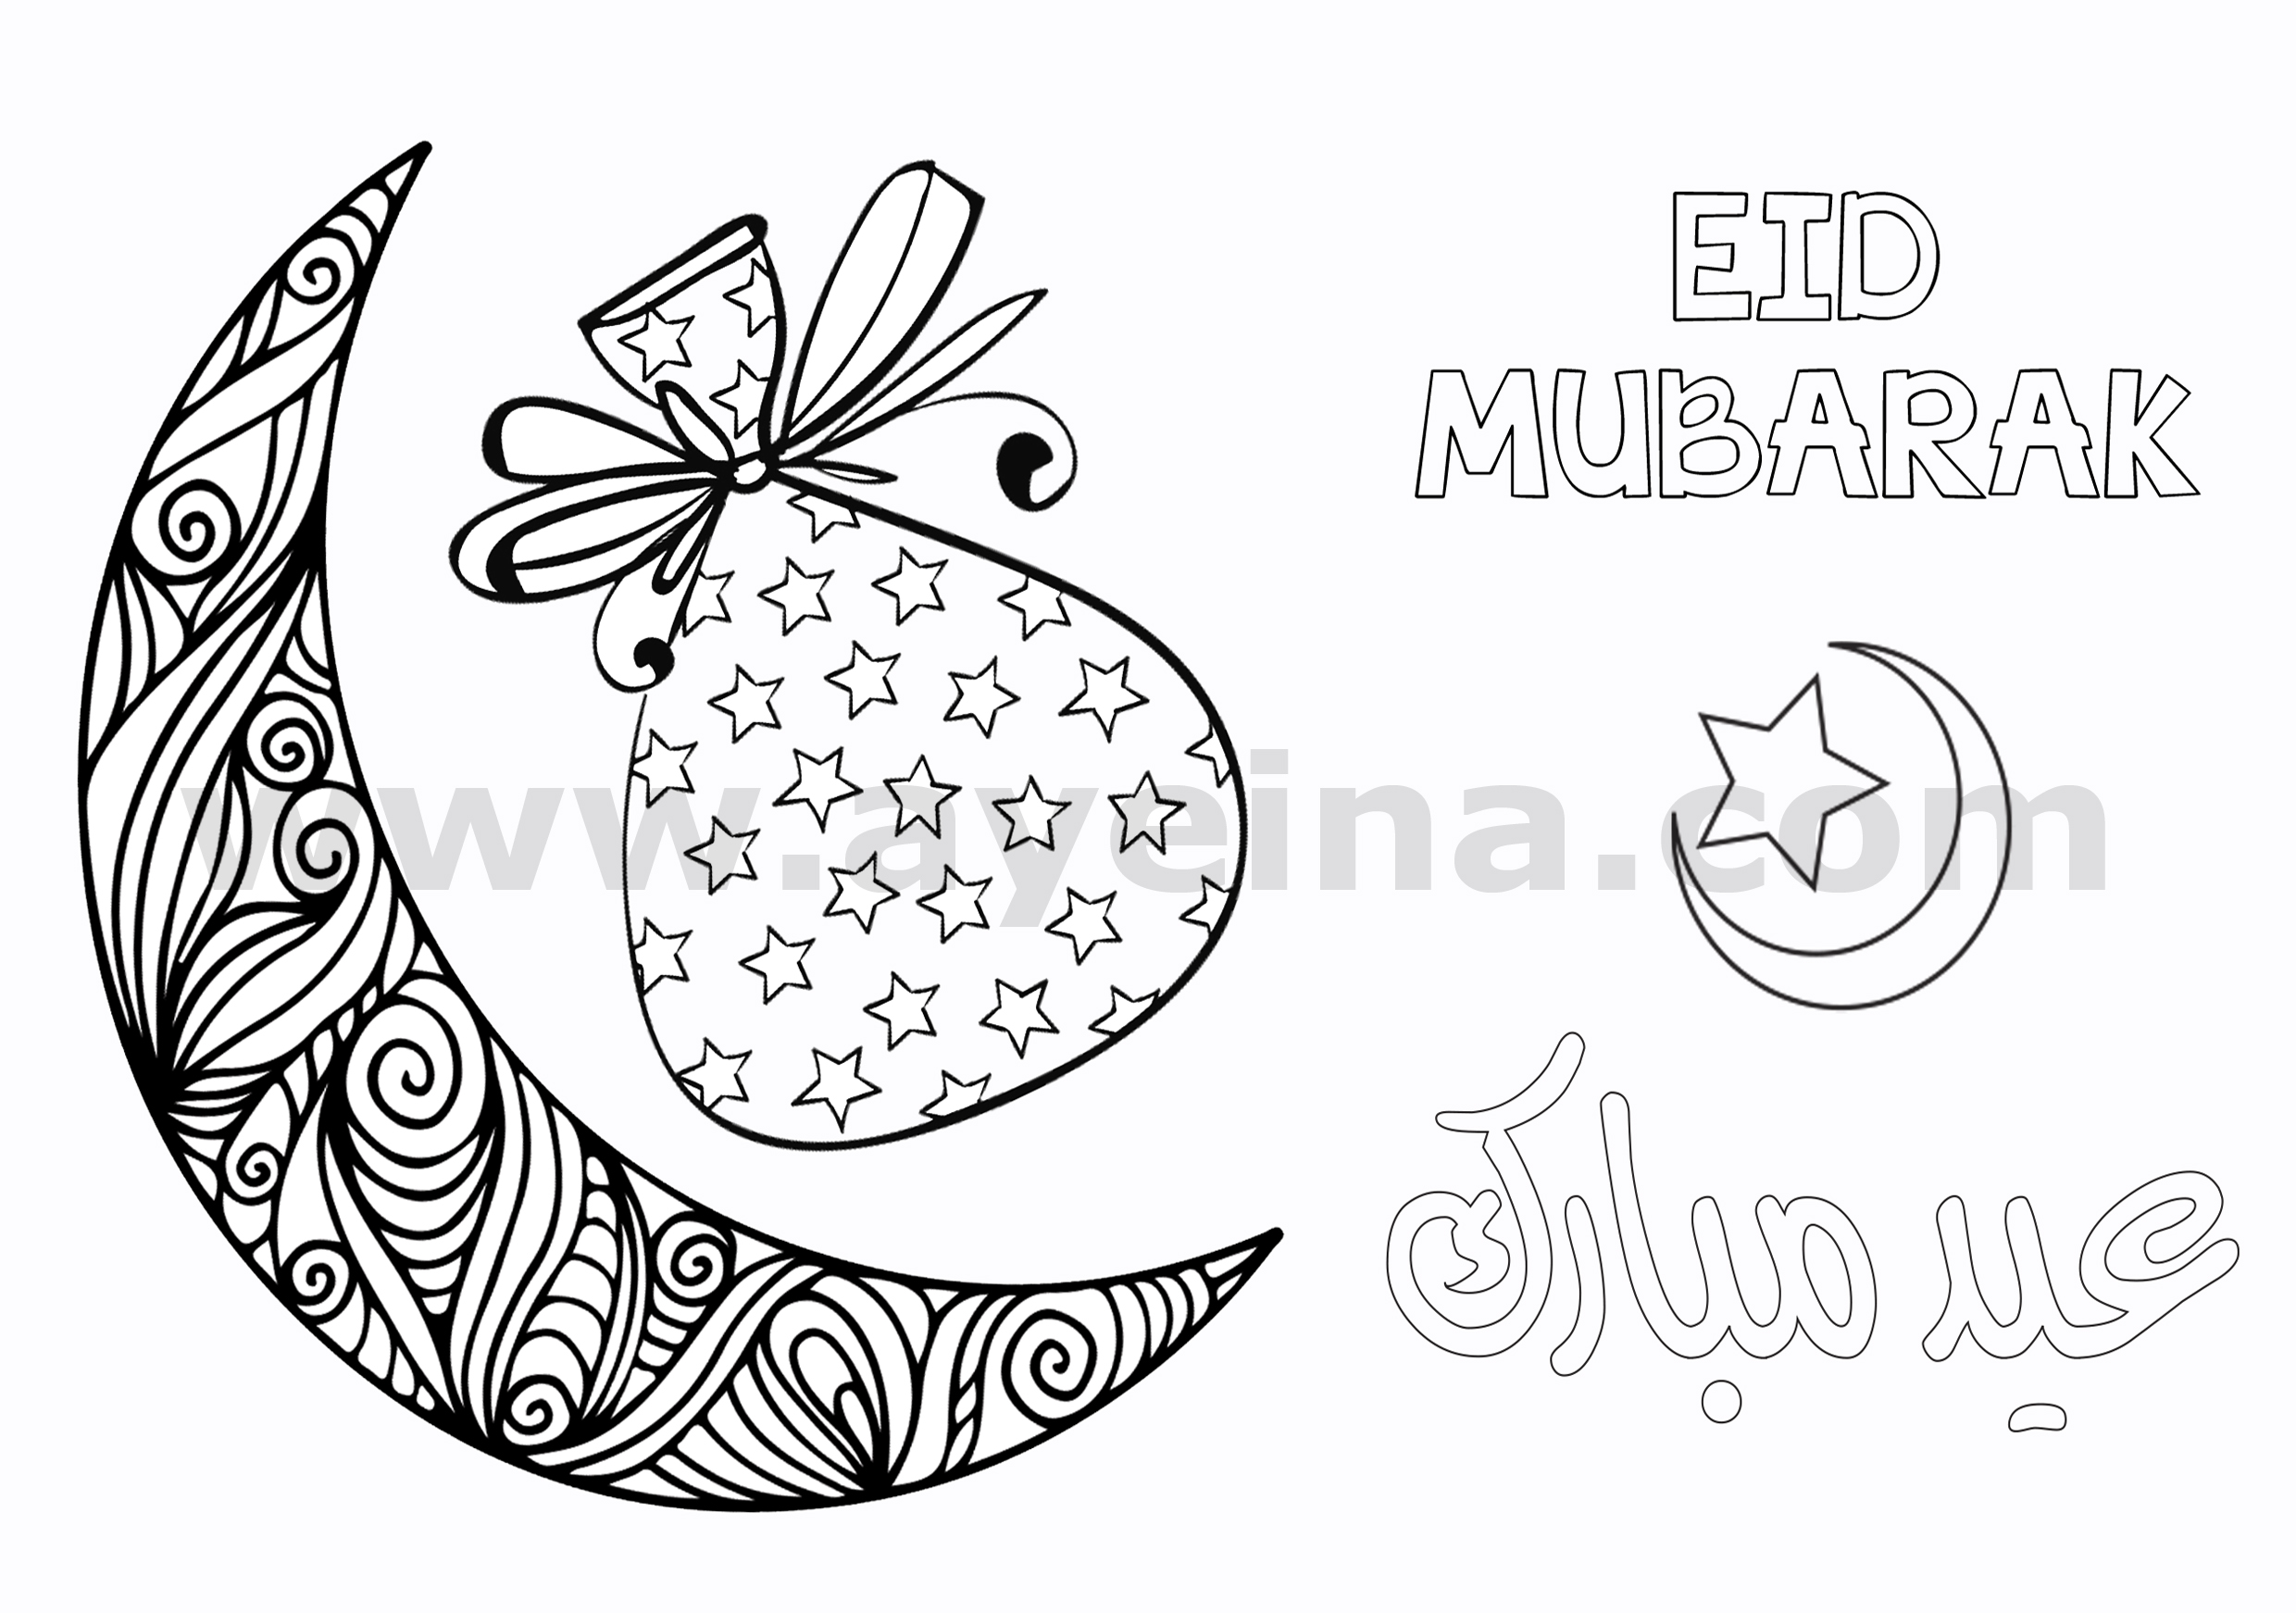 Eid Mubarak Free Coloring Card For Kids